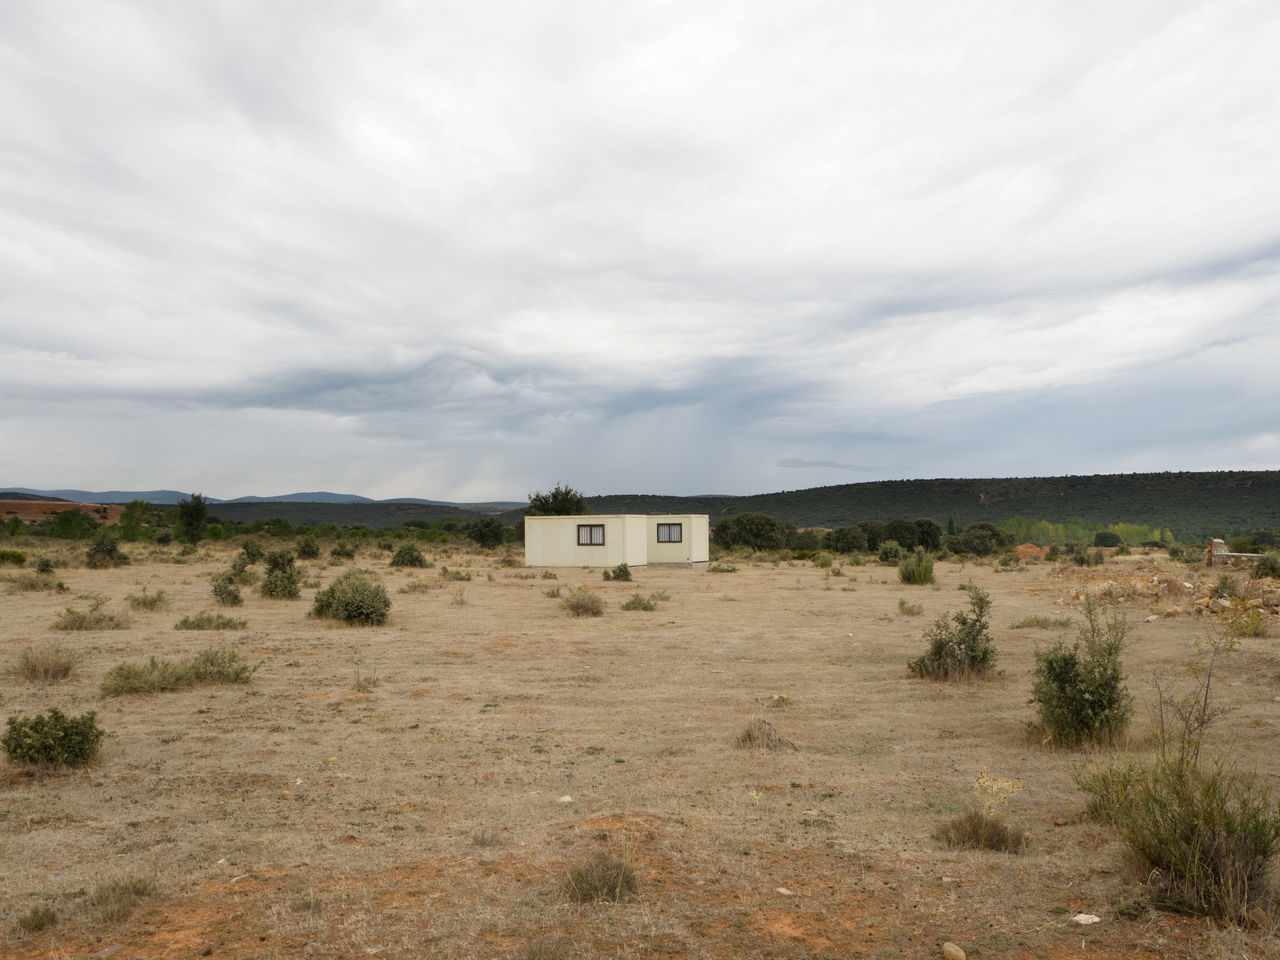 lonely bungalow in the wild on the Way Of Saint James / Camino De Santiago Accomodation Arid Climate Arid Landscape Bungalow Loneliness Lonely Pilgrimage Red Earth SPAIN Way Of Saint James